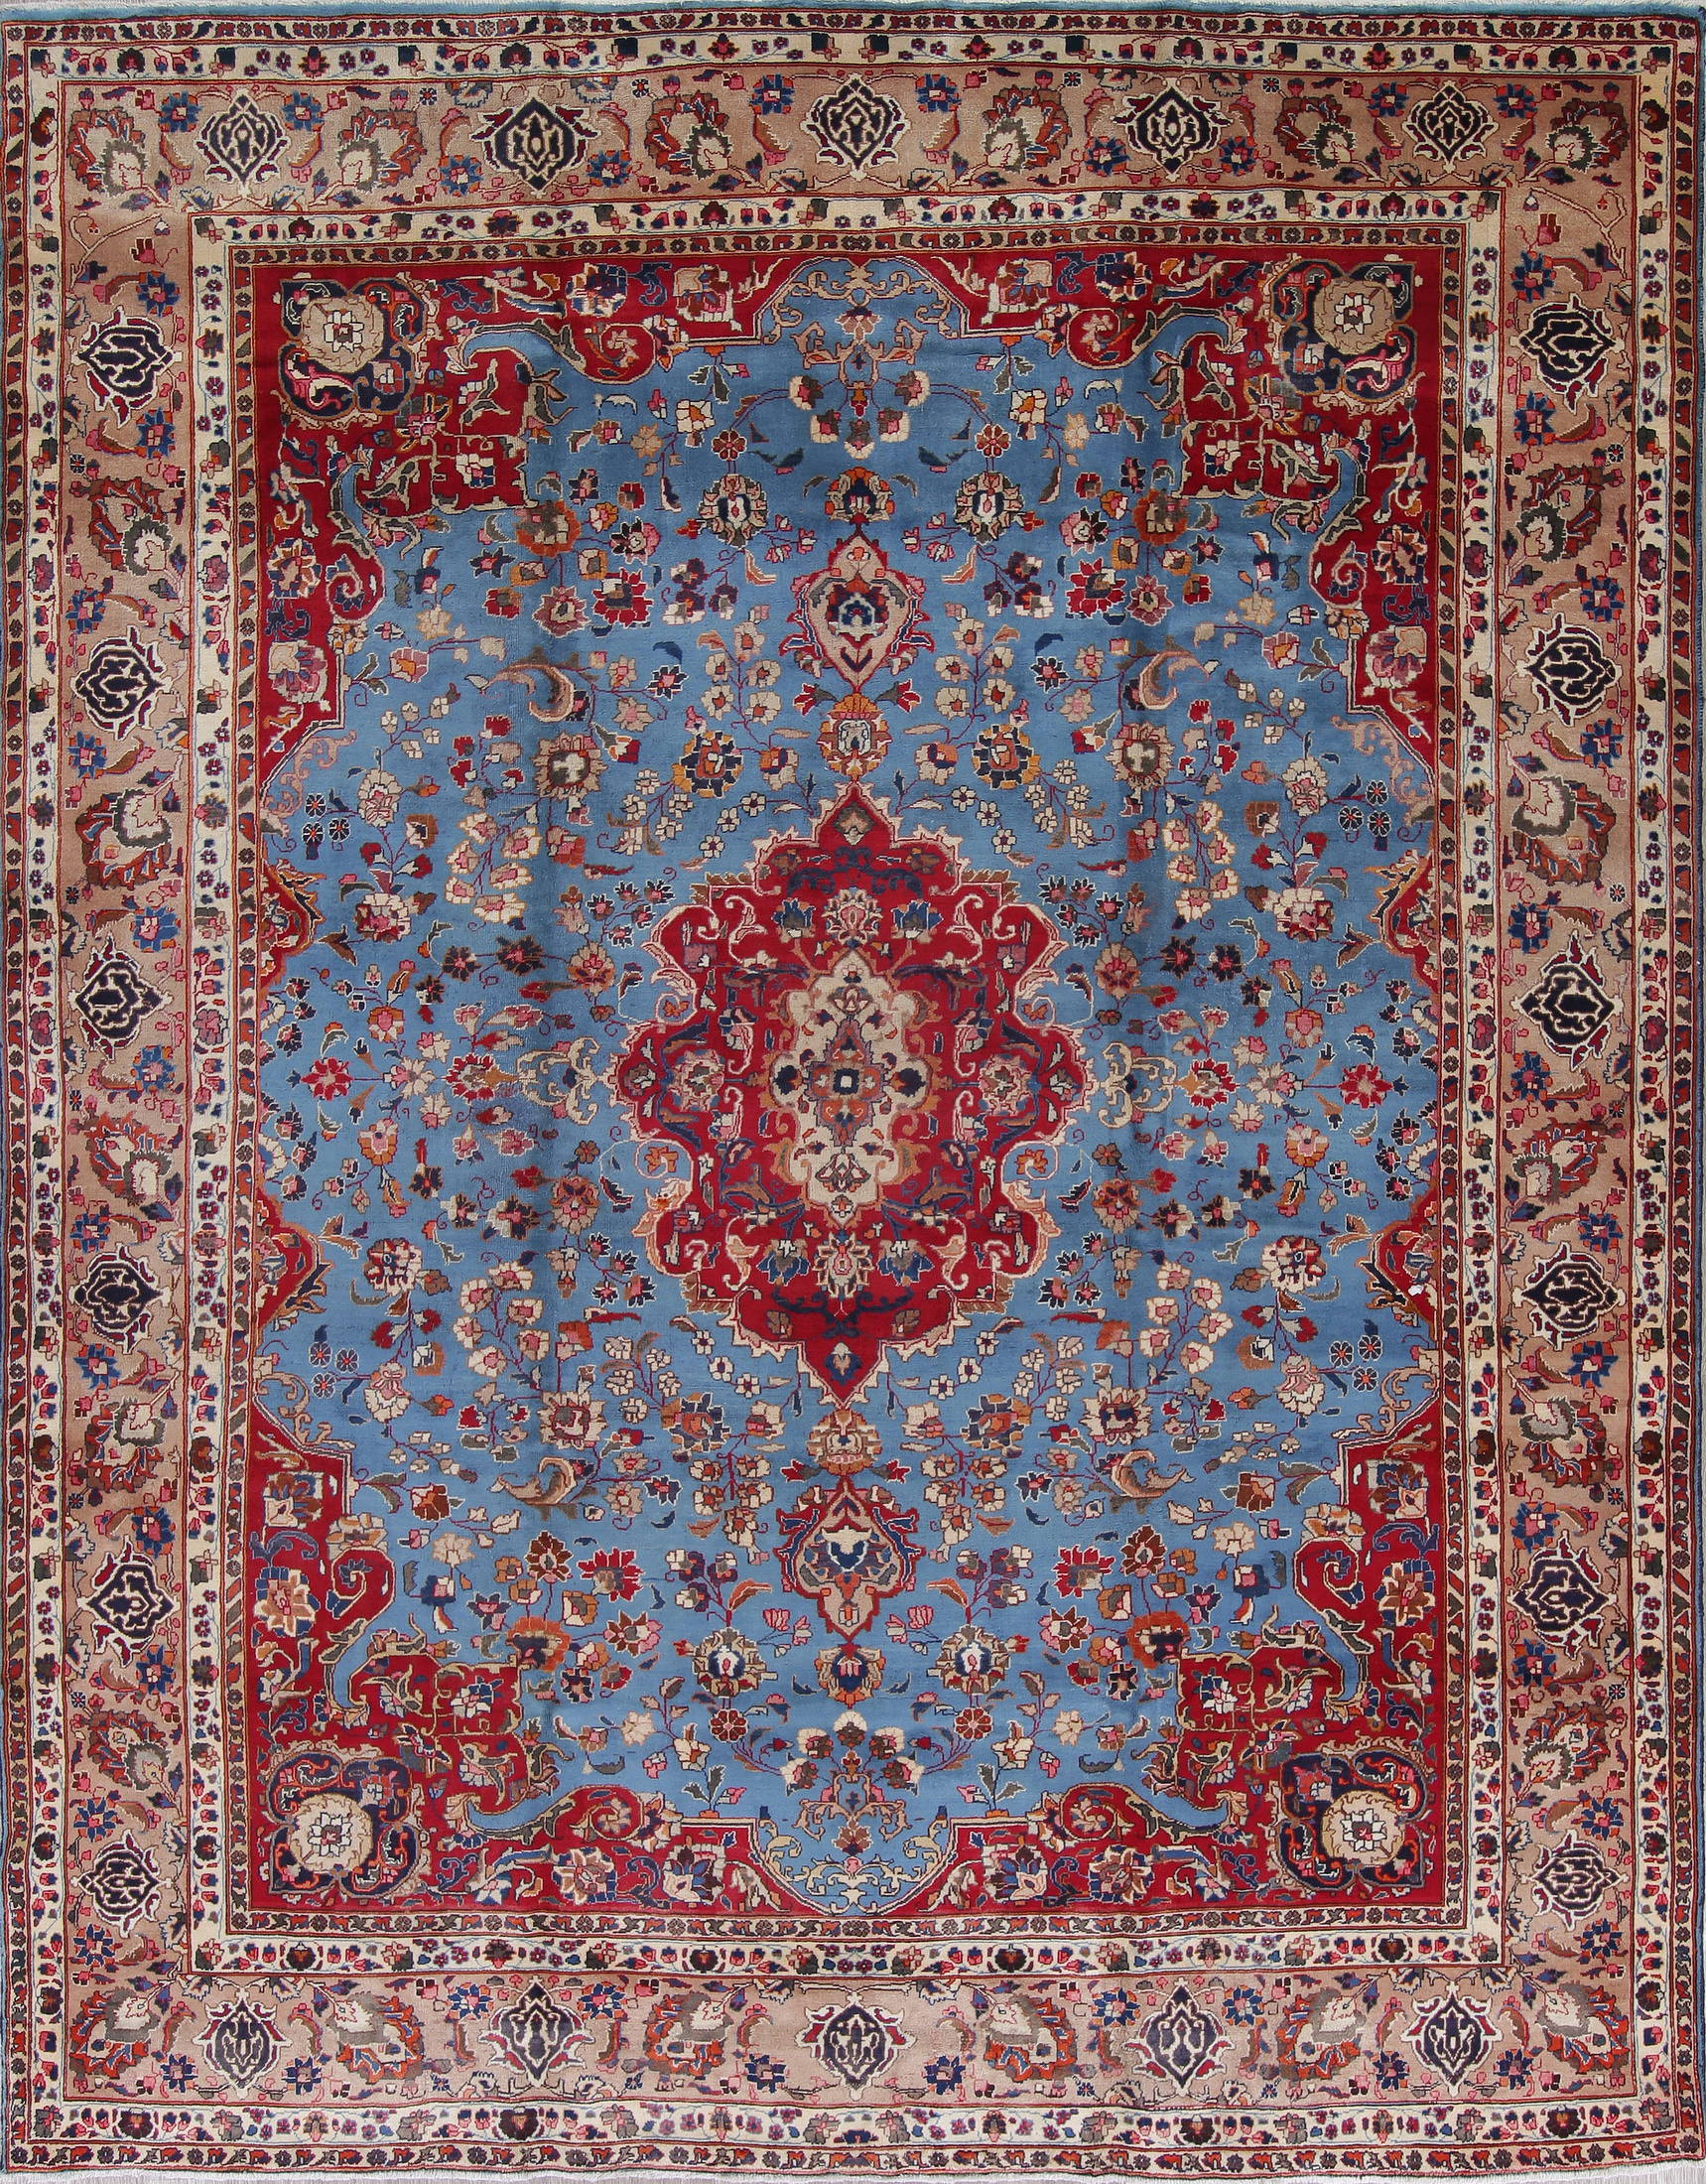 Blue Floral Mashad Persian Hand-Knotted 10x12 Wool Area Rug